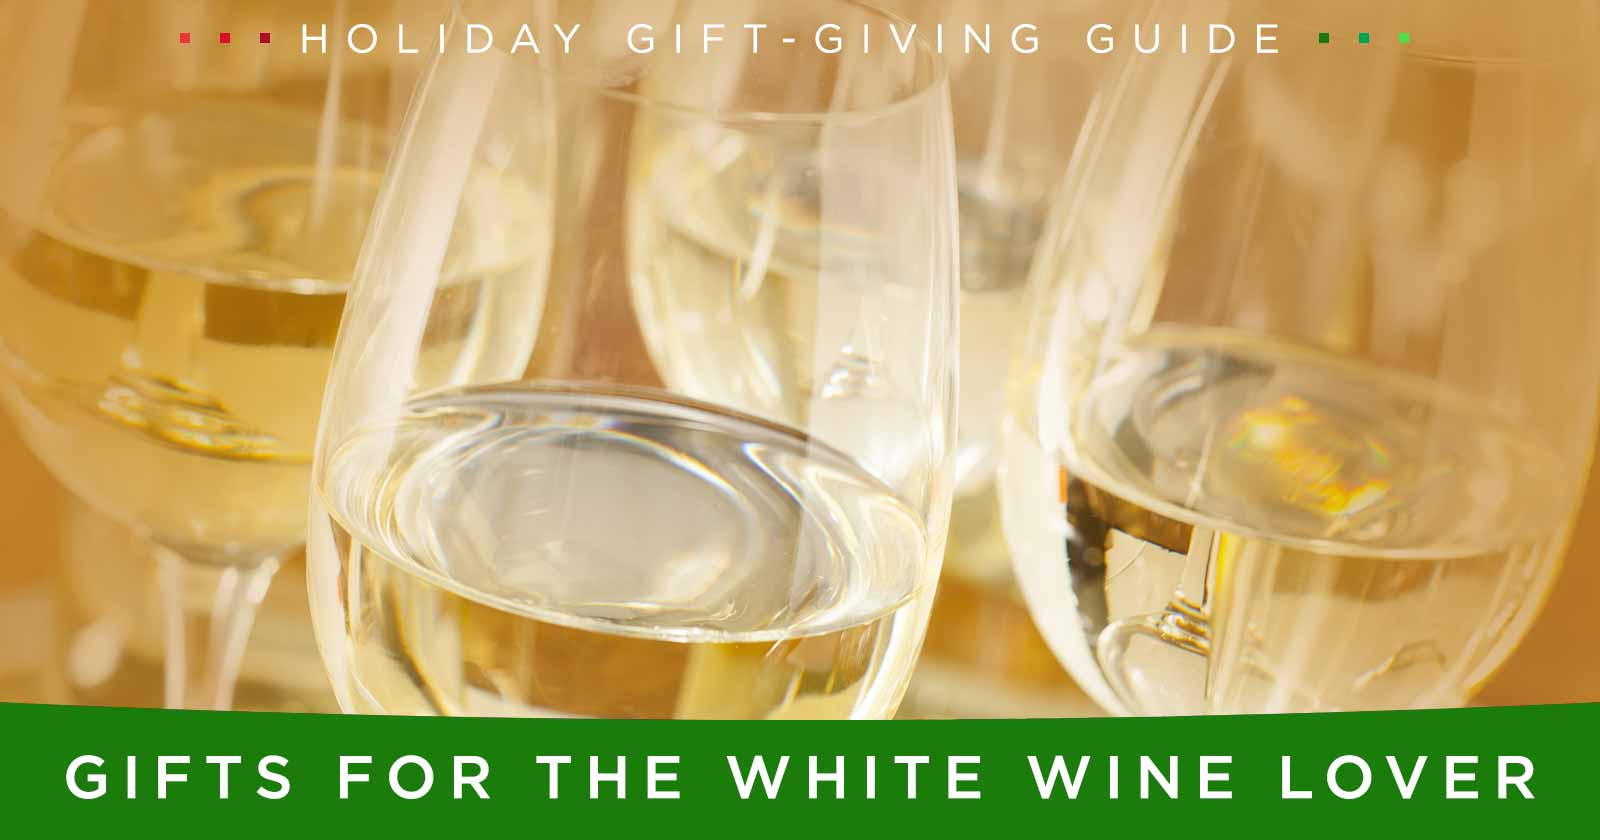 Gifts for the White Wine Lover